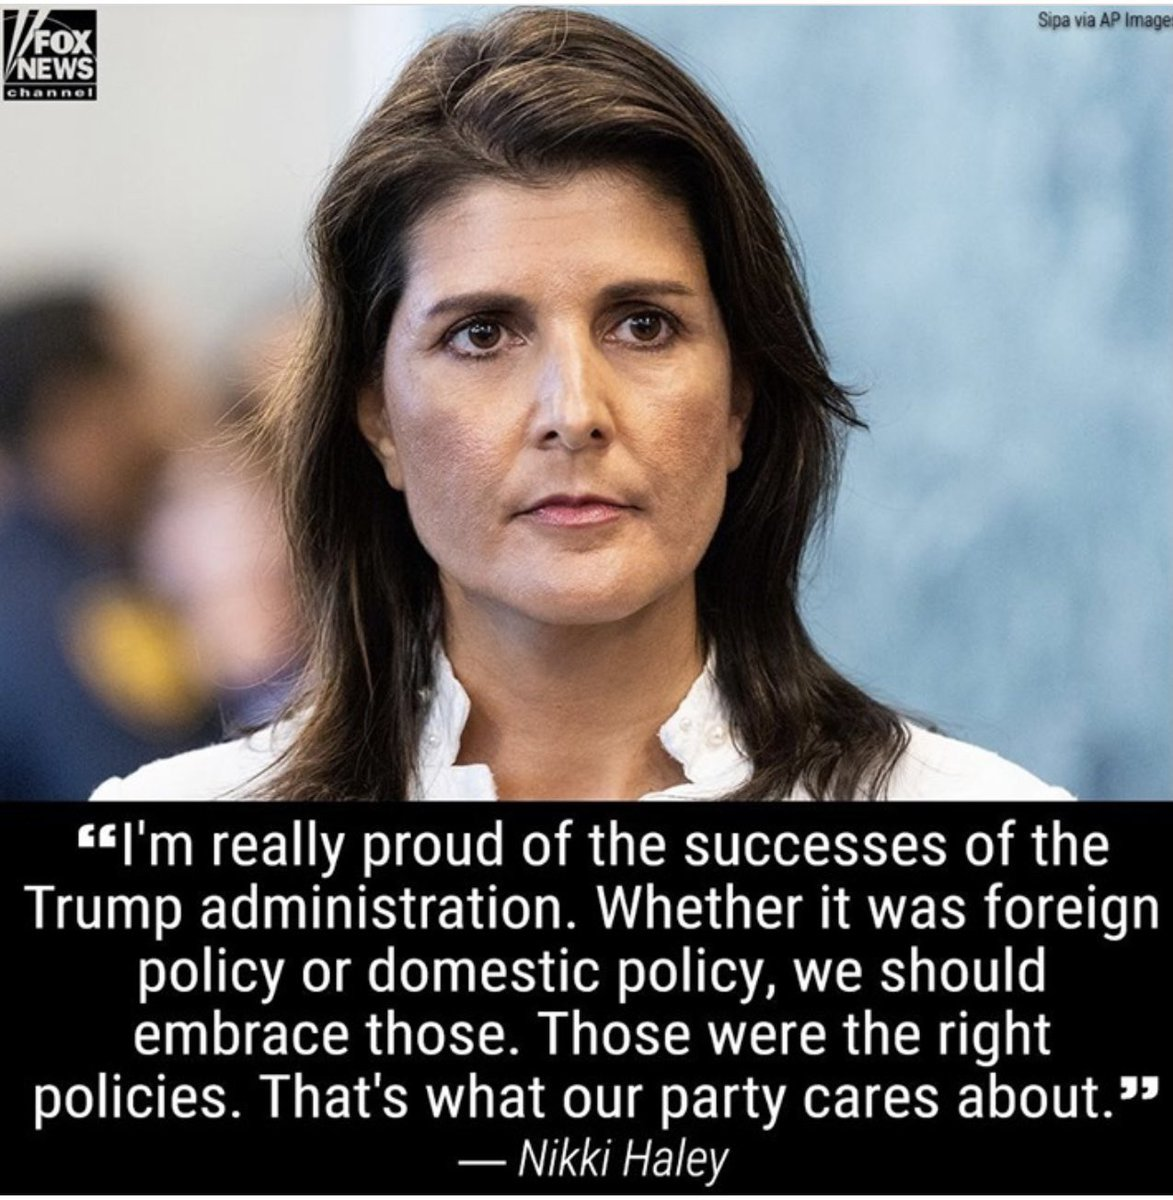 I'm really proud of the successes of the Trump administration. Whether it was foreign policy or domestic policy, we should embrace those. Those were the right policies. That's what the Republican Party cares about.